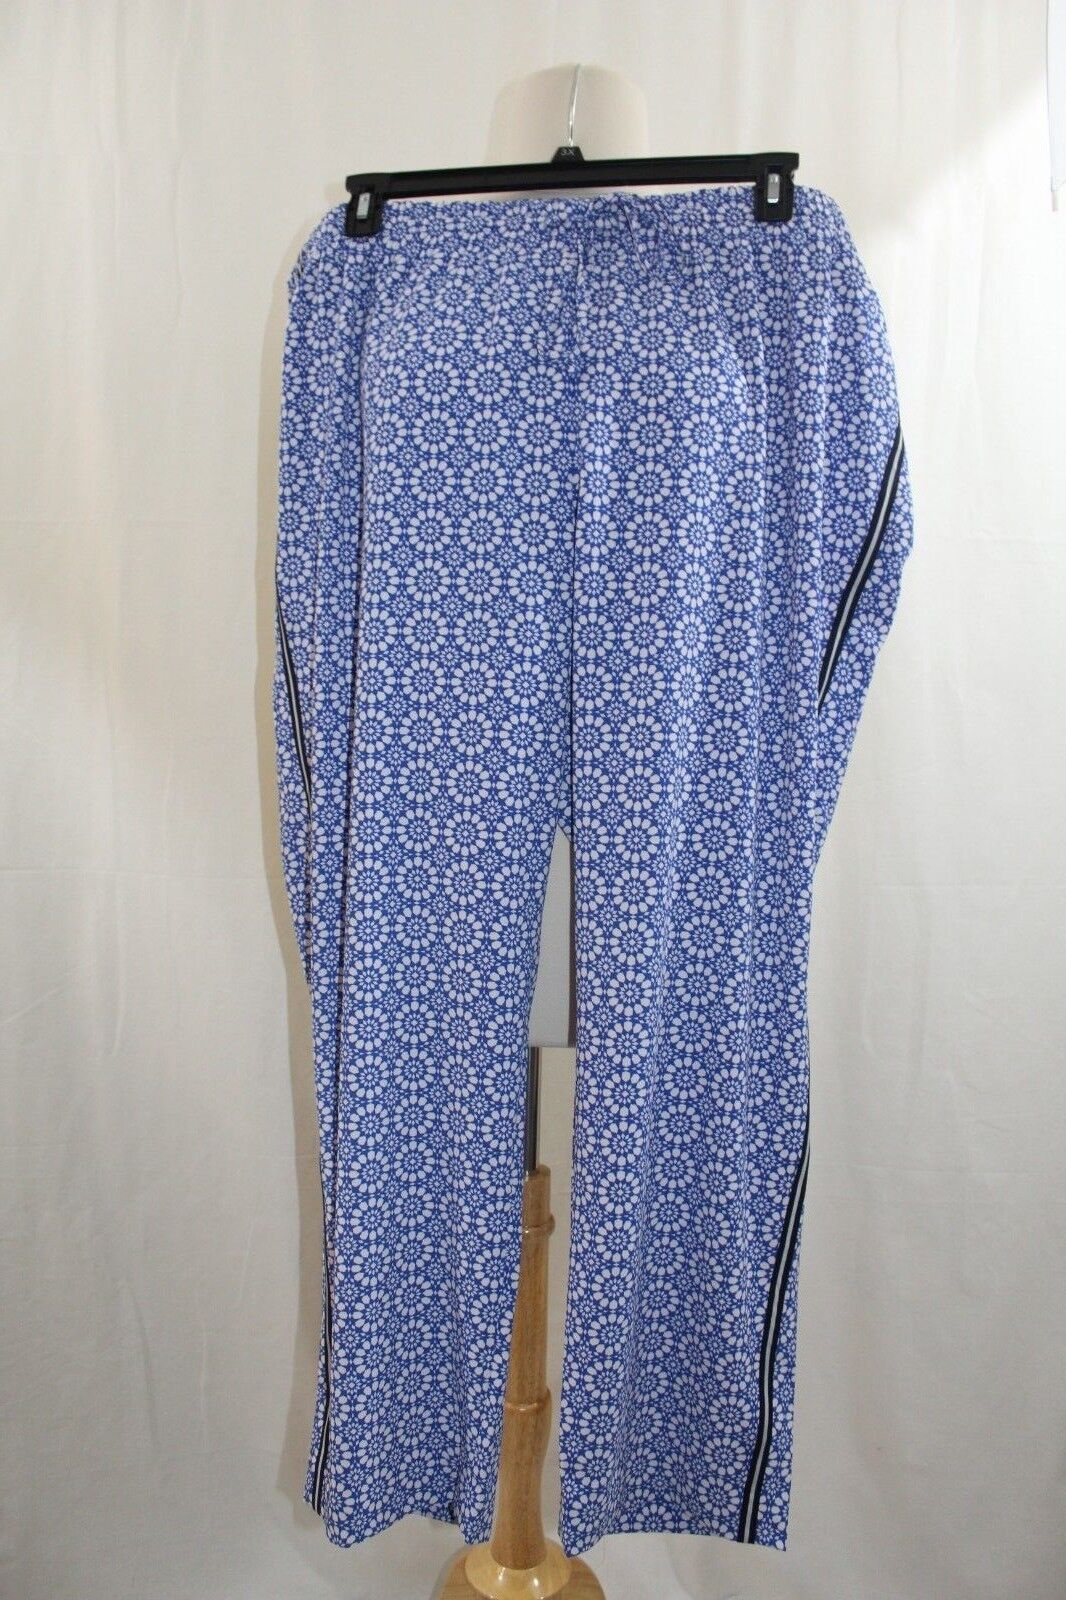 Talbots Women's Lounge Pants  -  NWT - Plus Size 3X - Royal bluee White